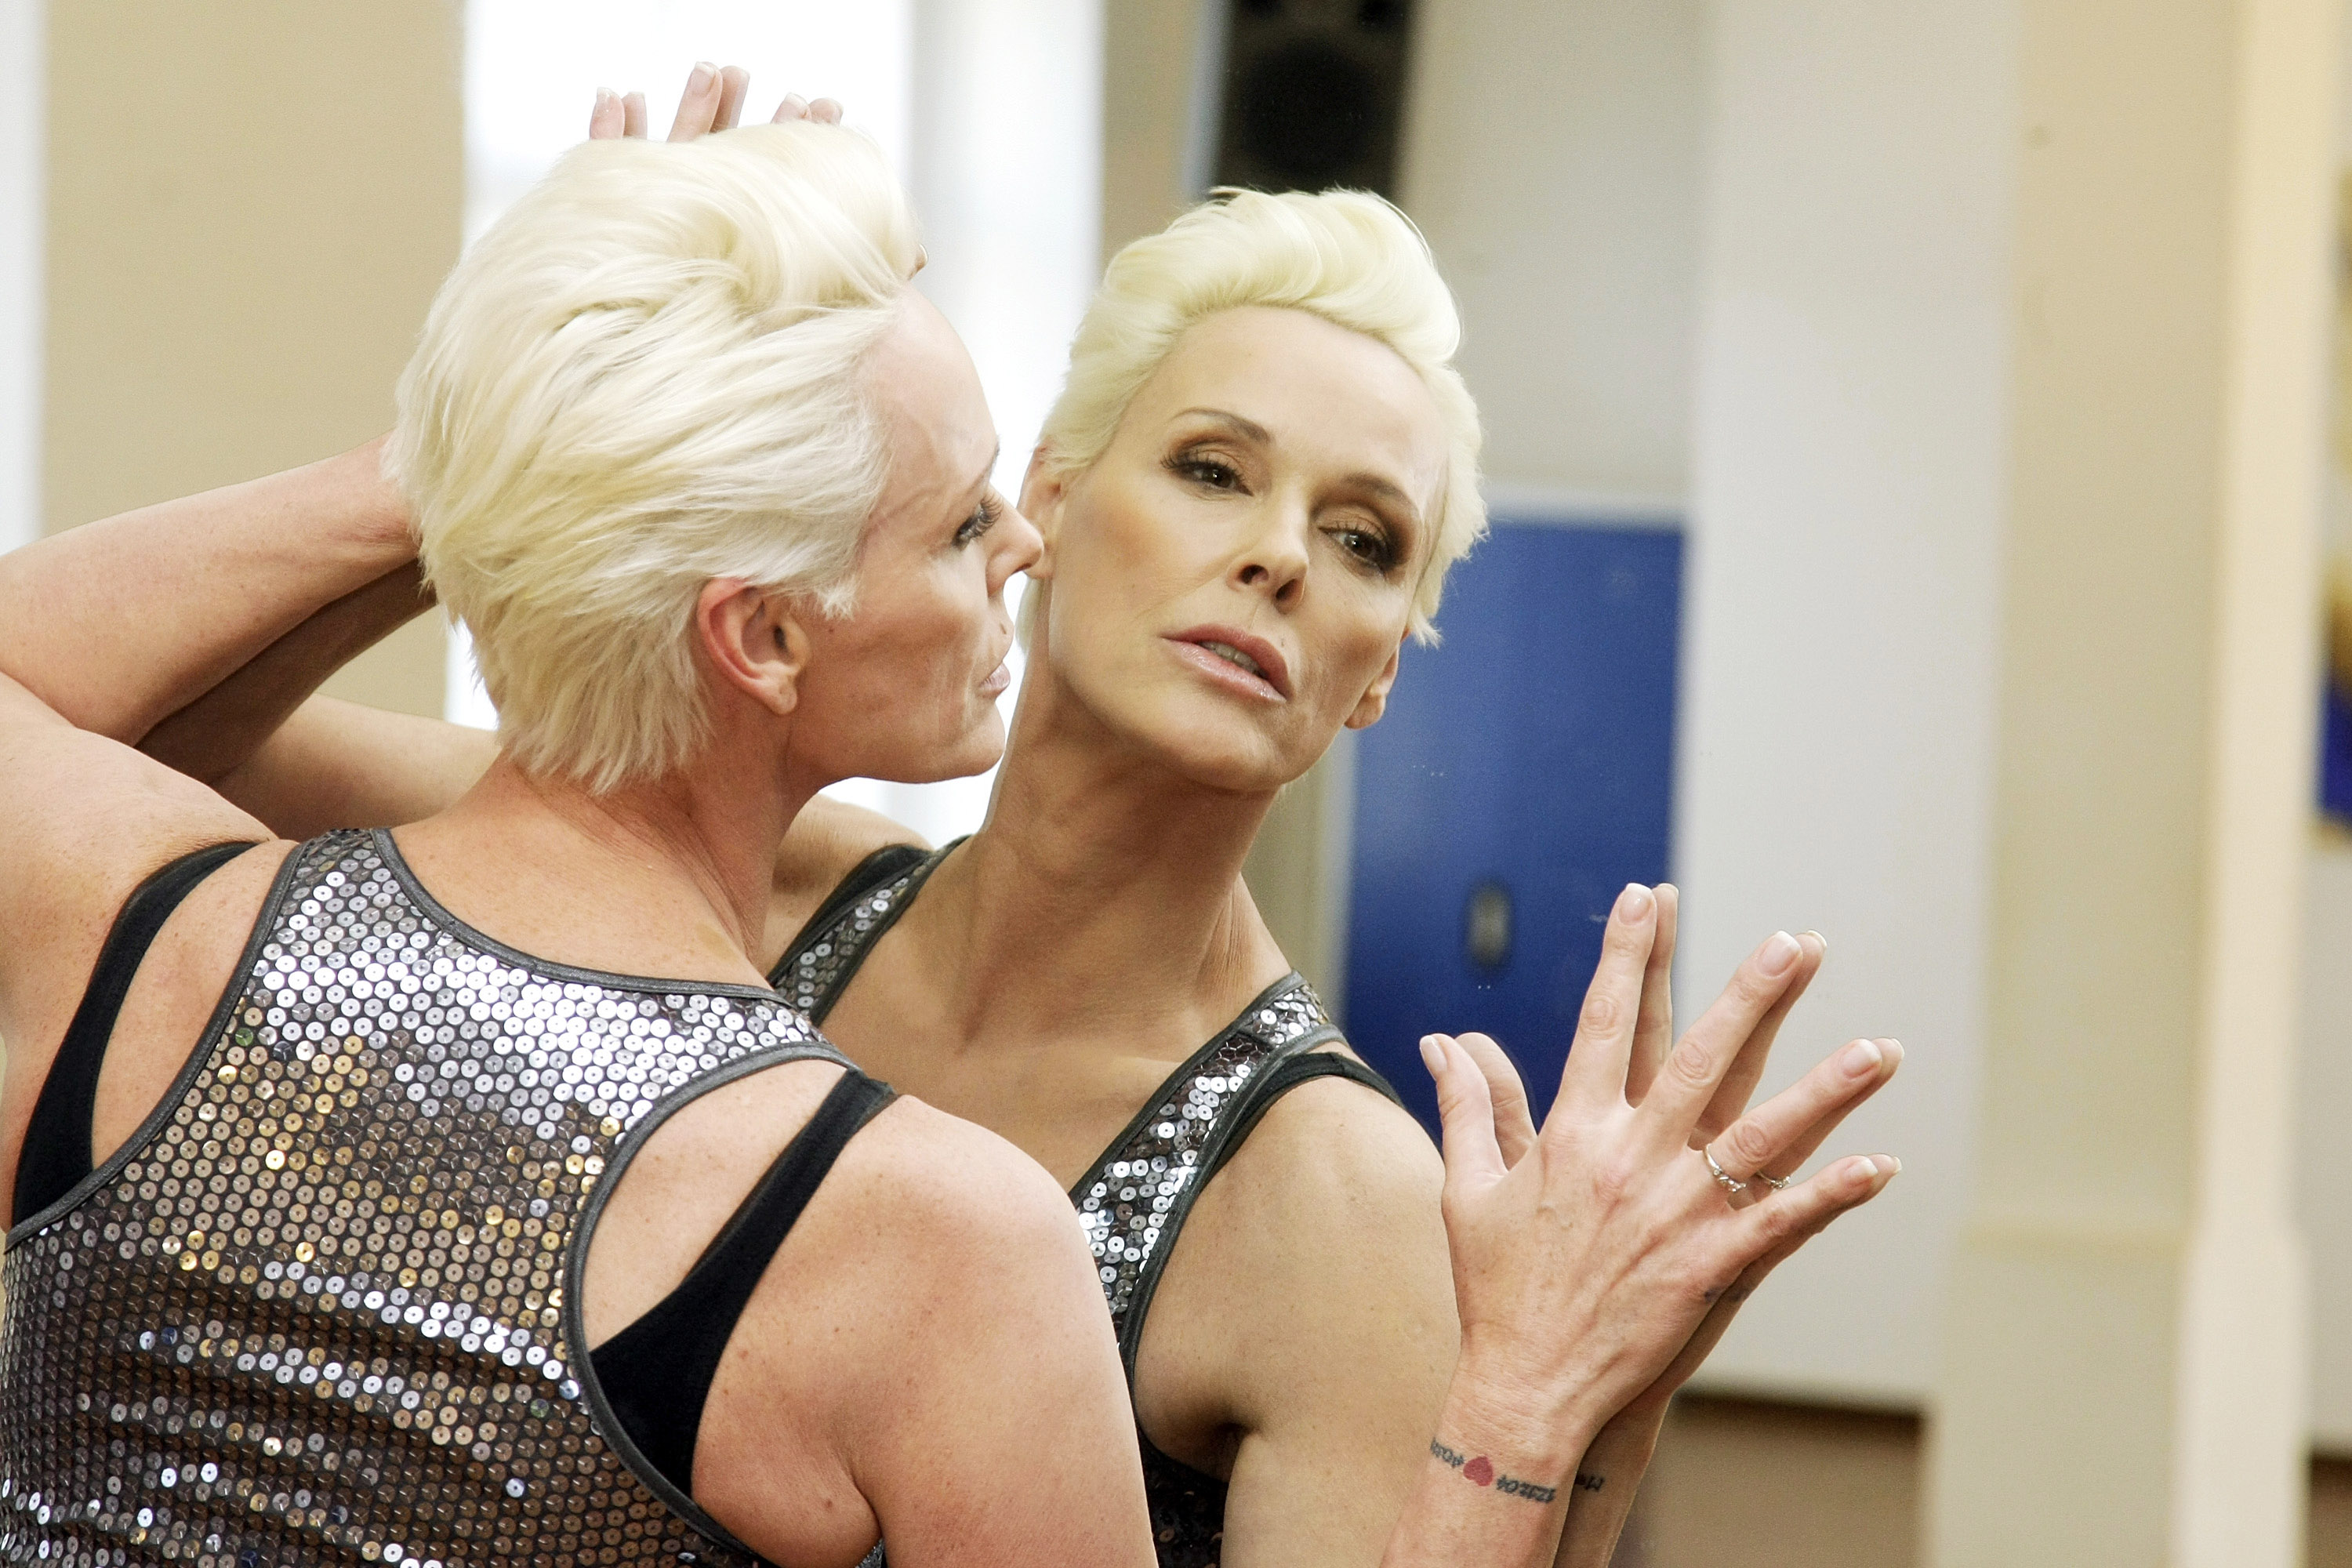 Actress Brigitte Nielsen attends 'Let's Dance' training at Tanzschule Stelter on April 7, 2010 in Berlin, Germany.